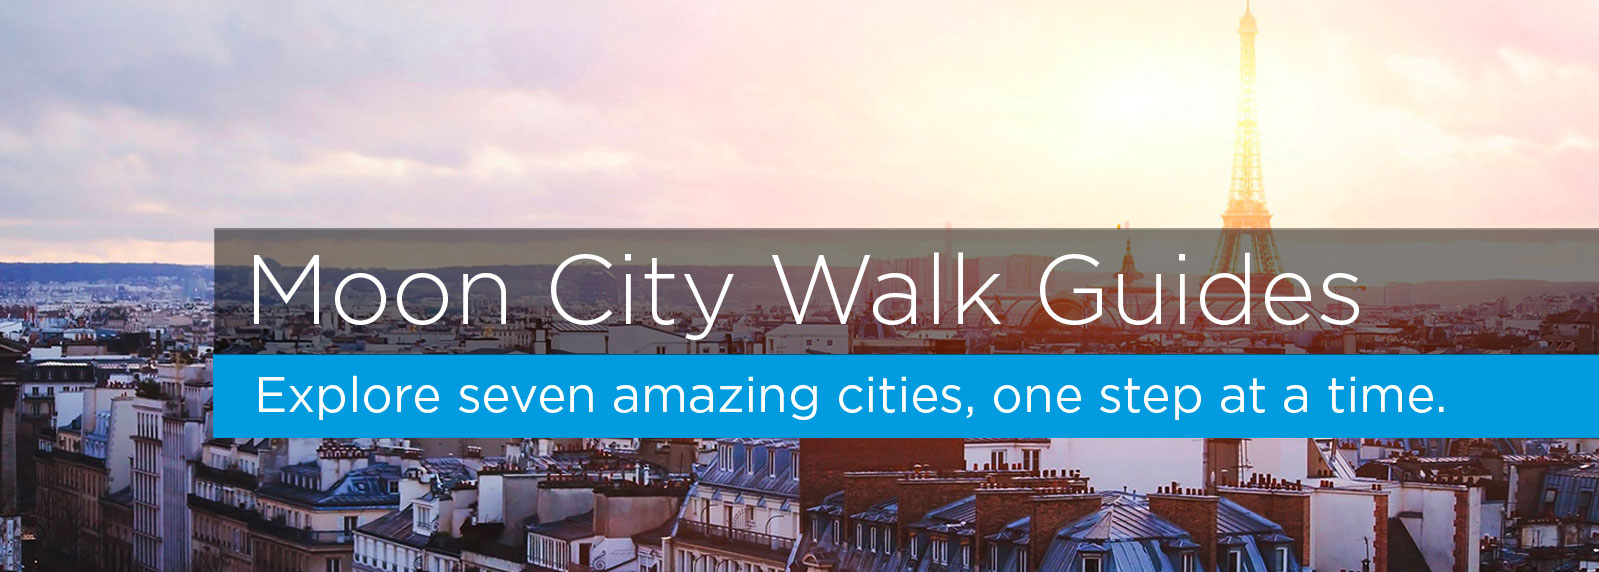 Moon City Walks Guides - Explore seven amazing cities, one step at a time.